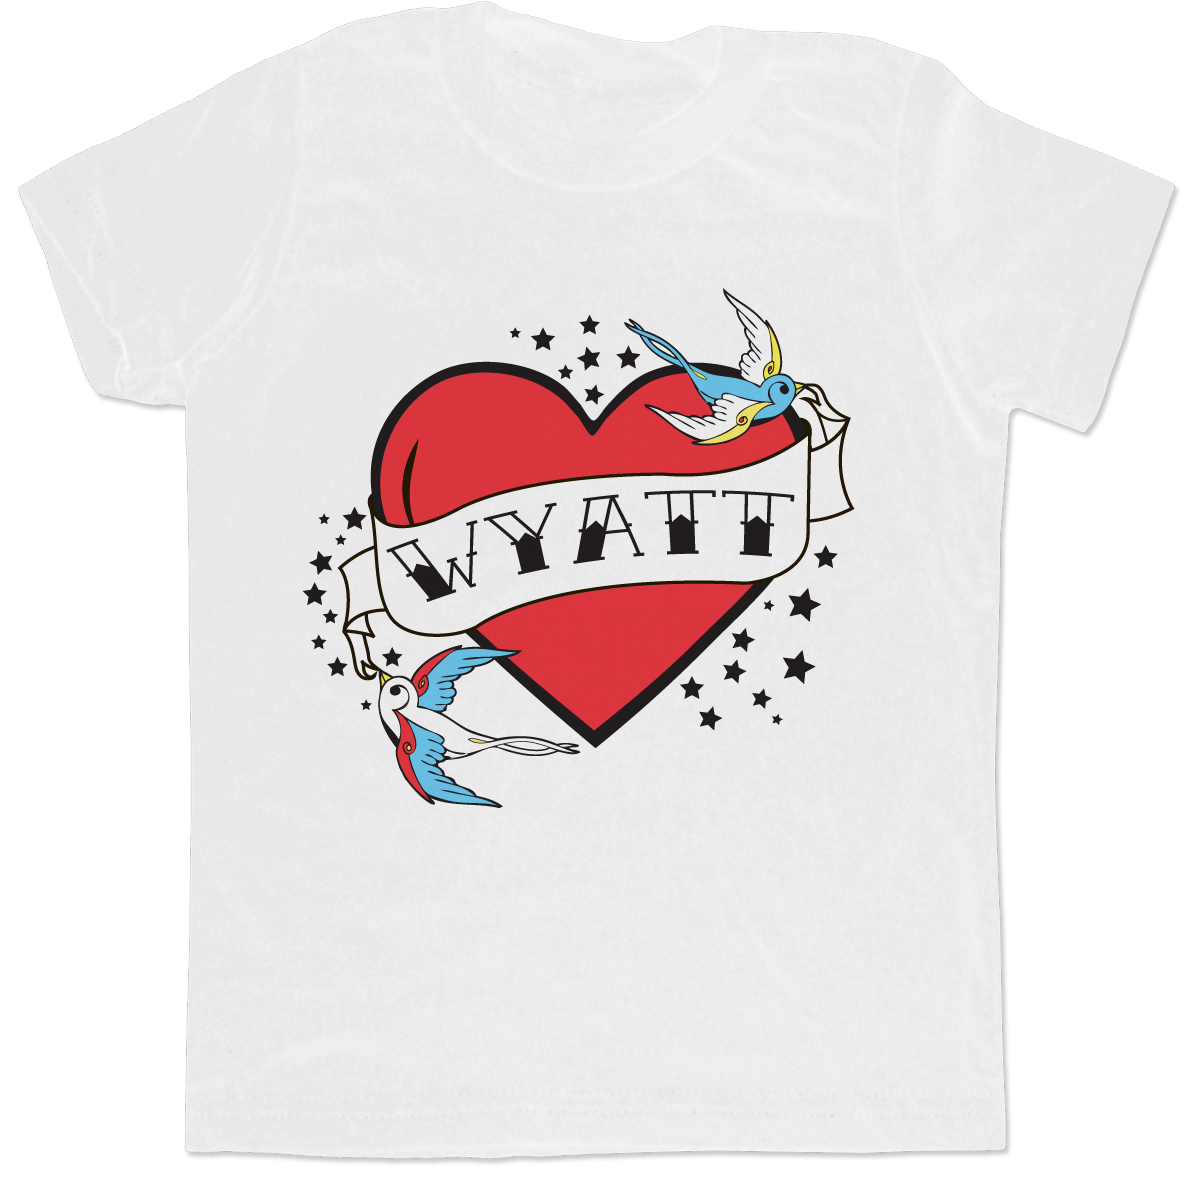 Flying_Sparrow_Kids_Shirt_Wite_and_Red__95314.1408580262.1280.1280.jpg